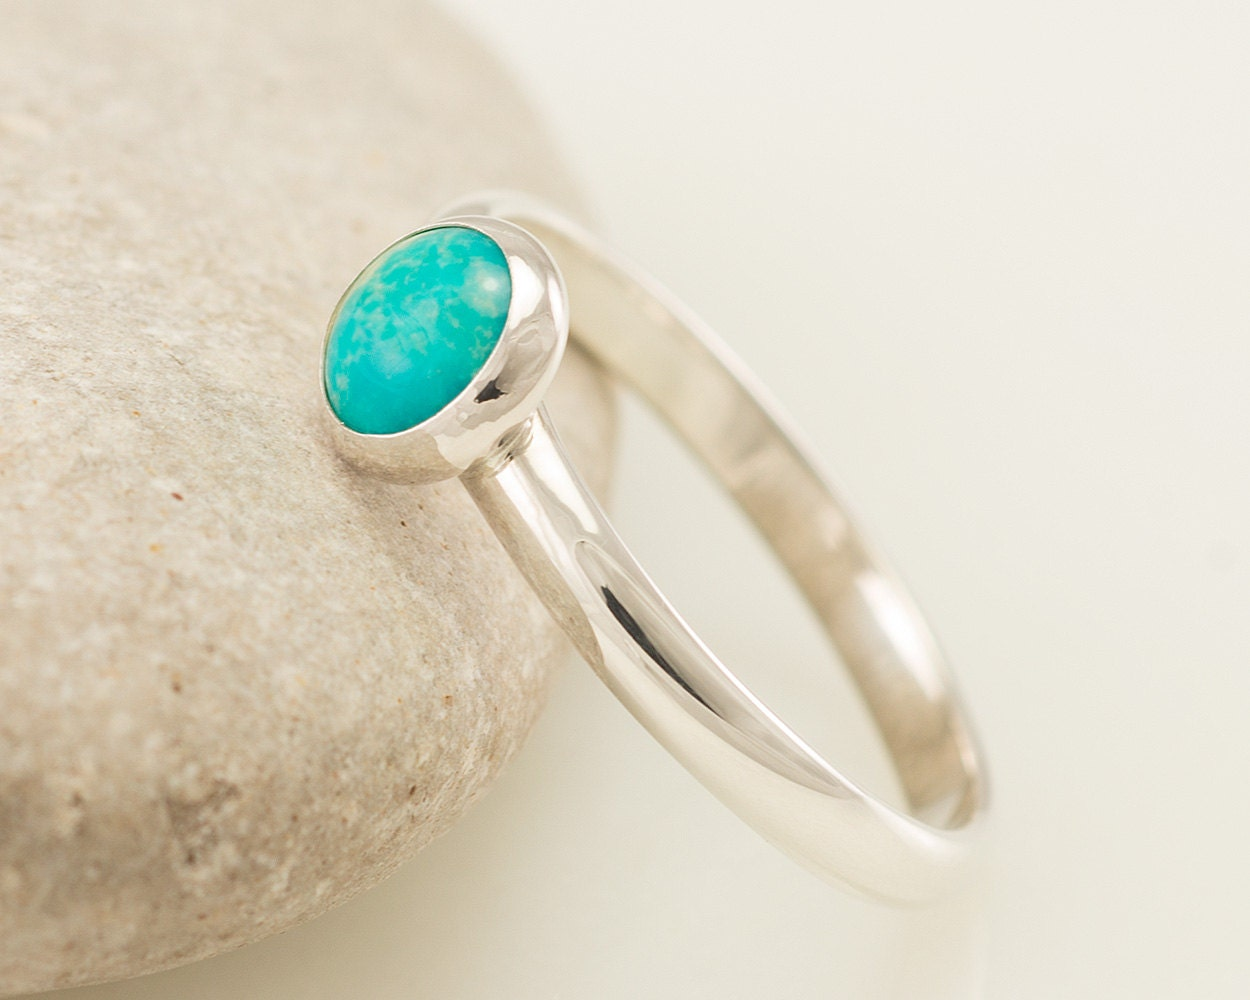 happysolez rings the this page charms three on turquoise boutique from best jewelry pandora images pinterest design ladies bracelet by colors seashore is pretty so in stone